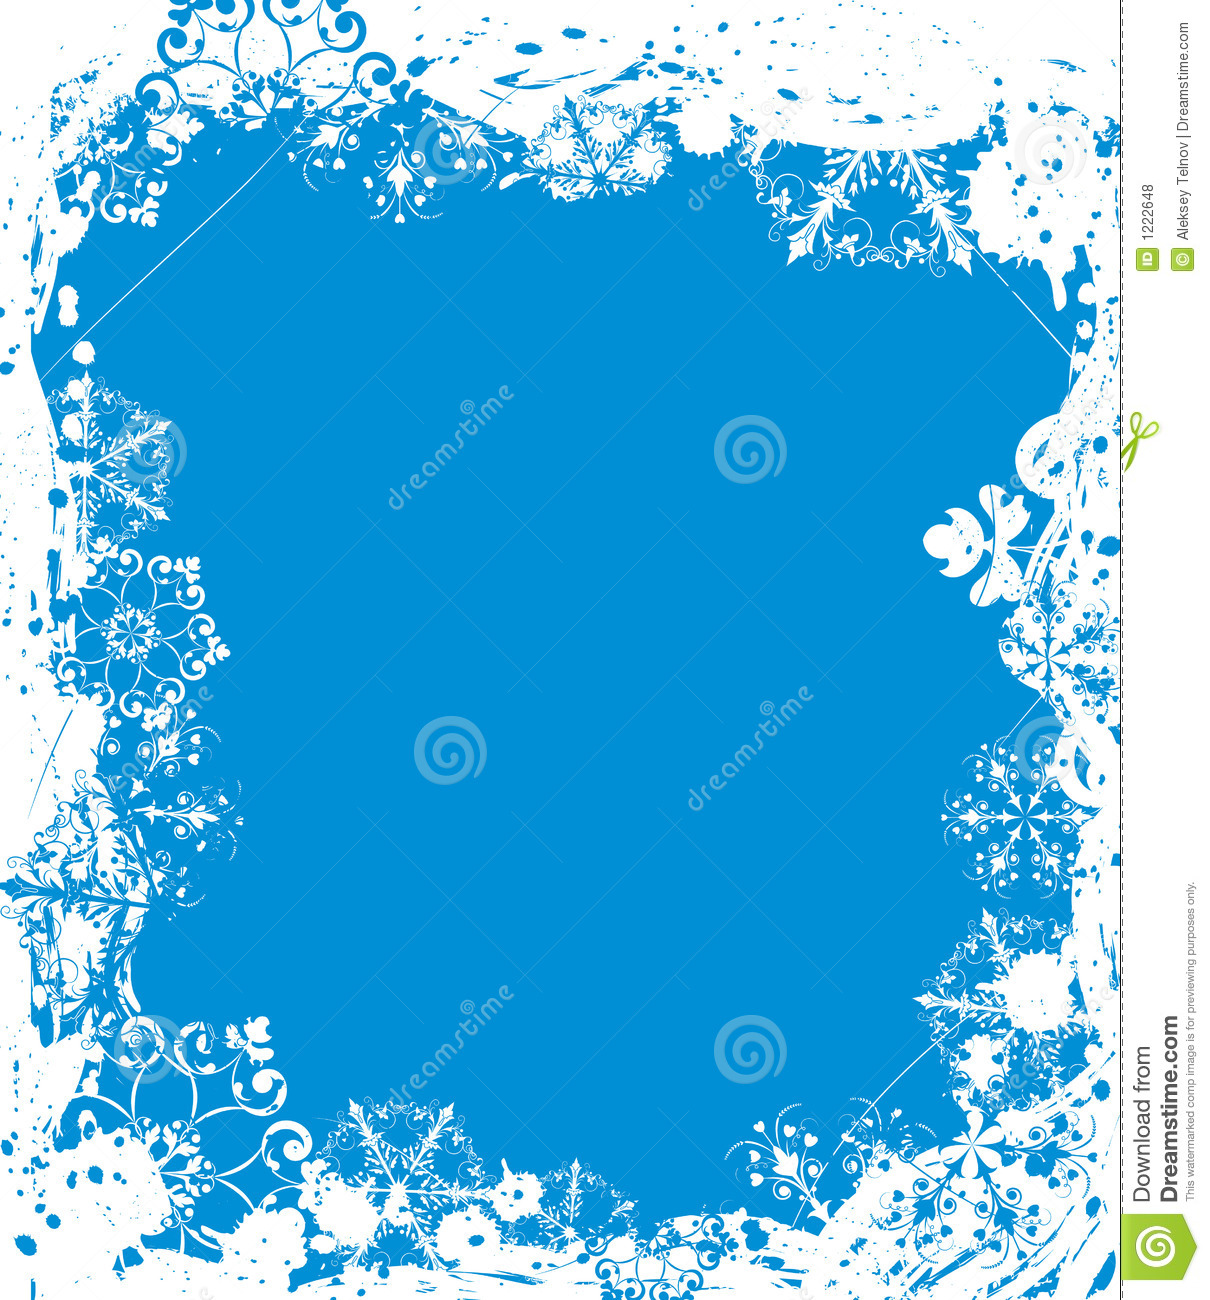 Snowflake Grunge Frame, Elements For Design, Vector Royalty Free Stock ...